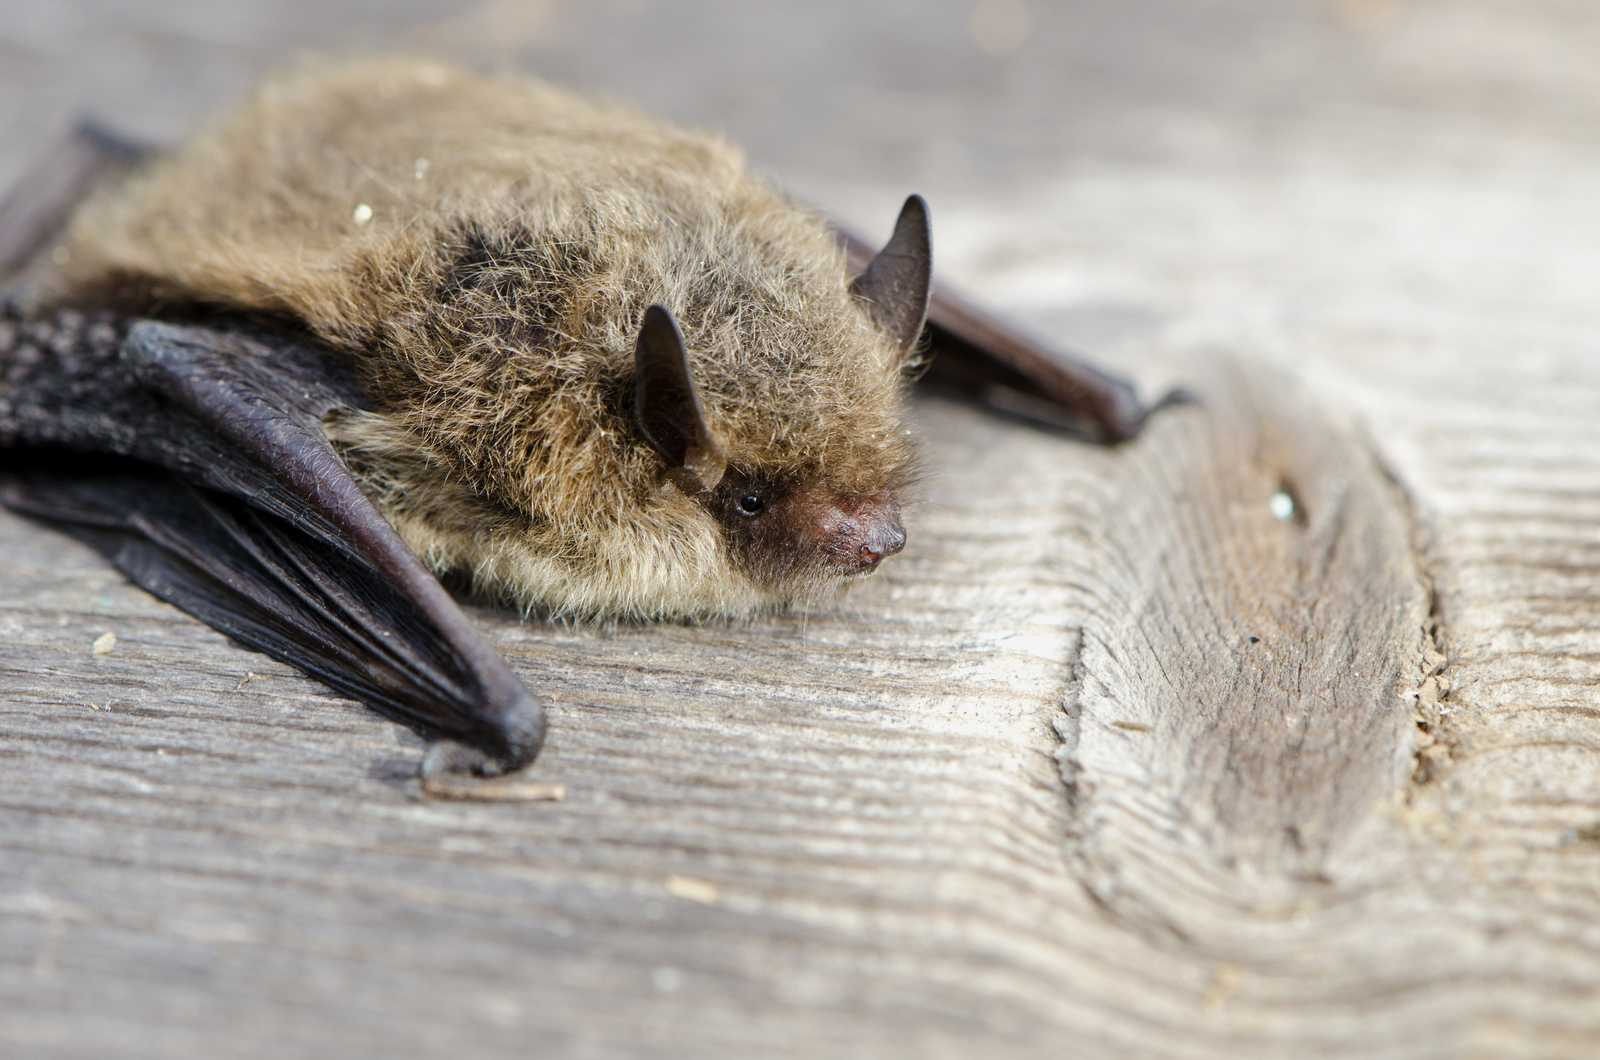 How do bats have babies?